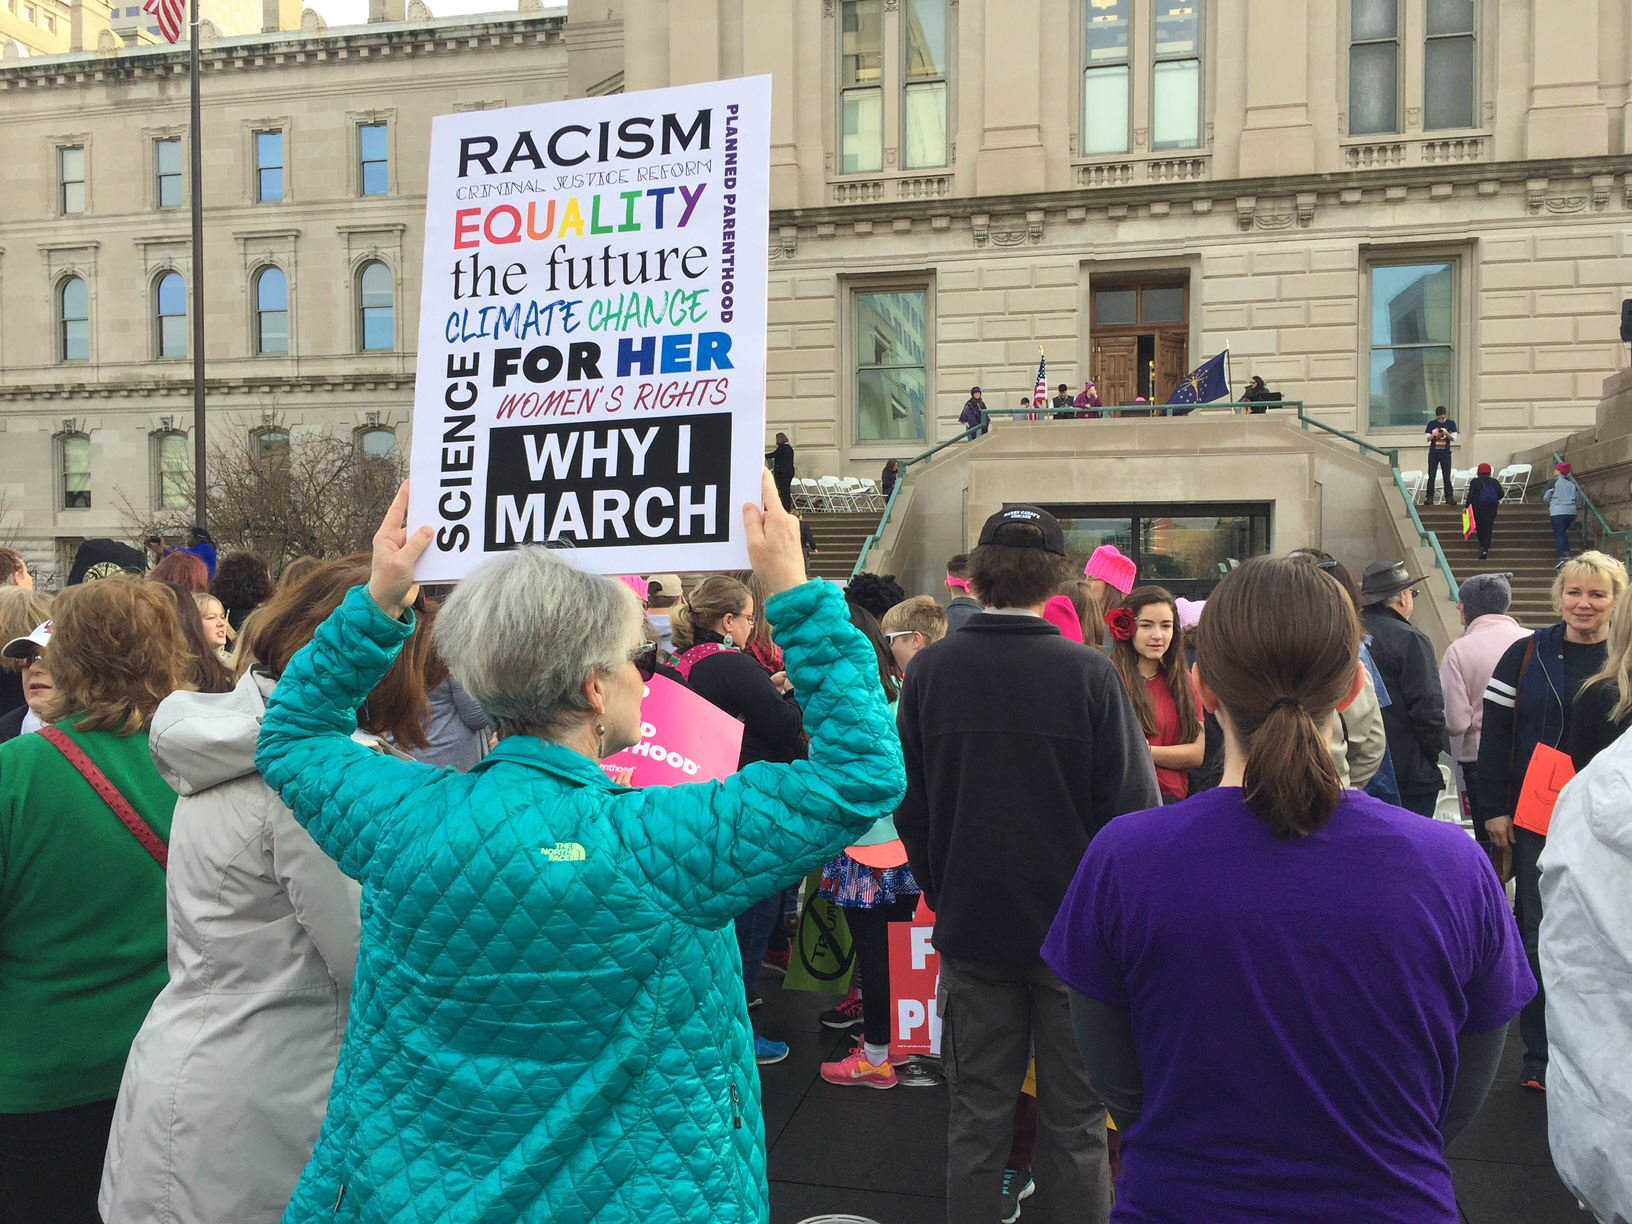 Indianapolis Women's March